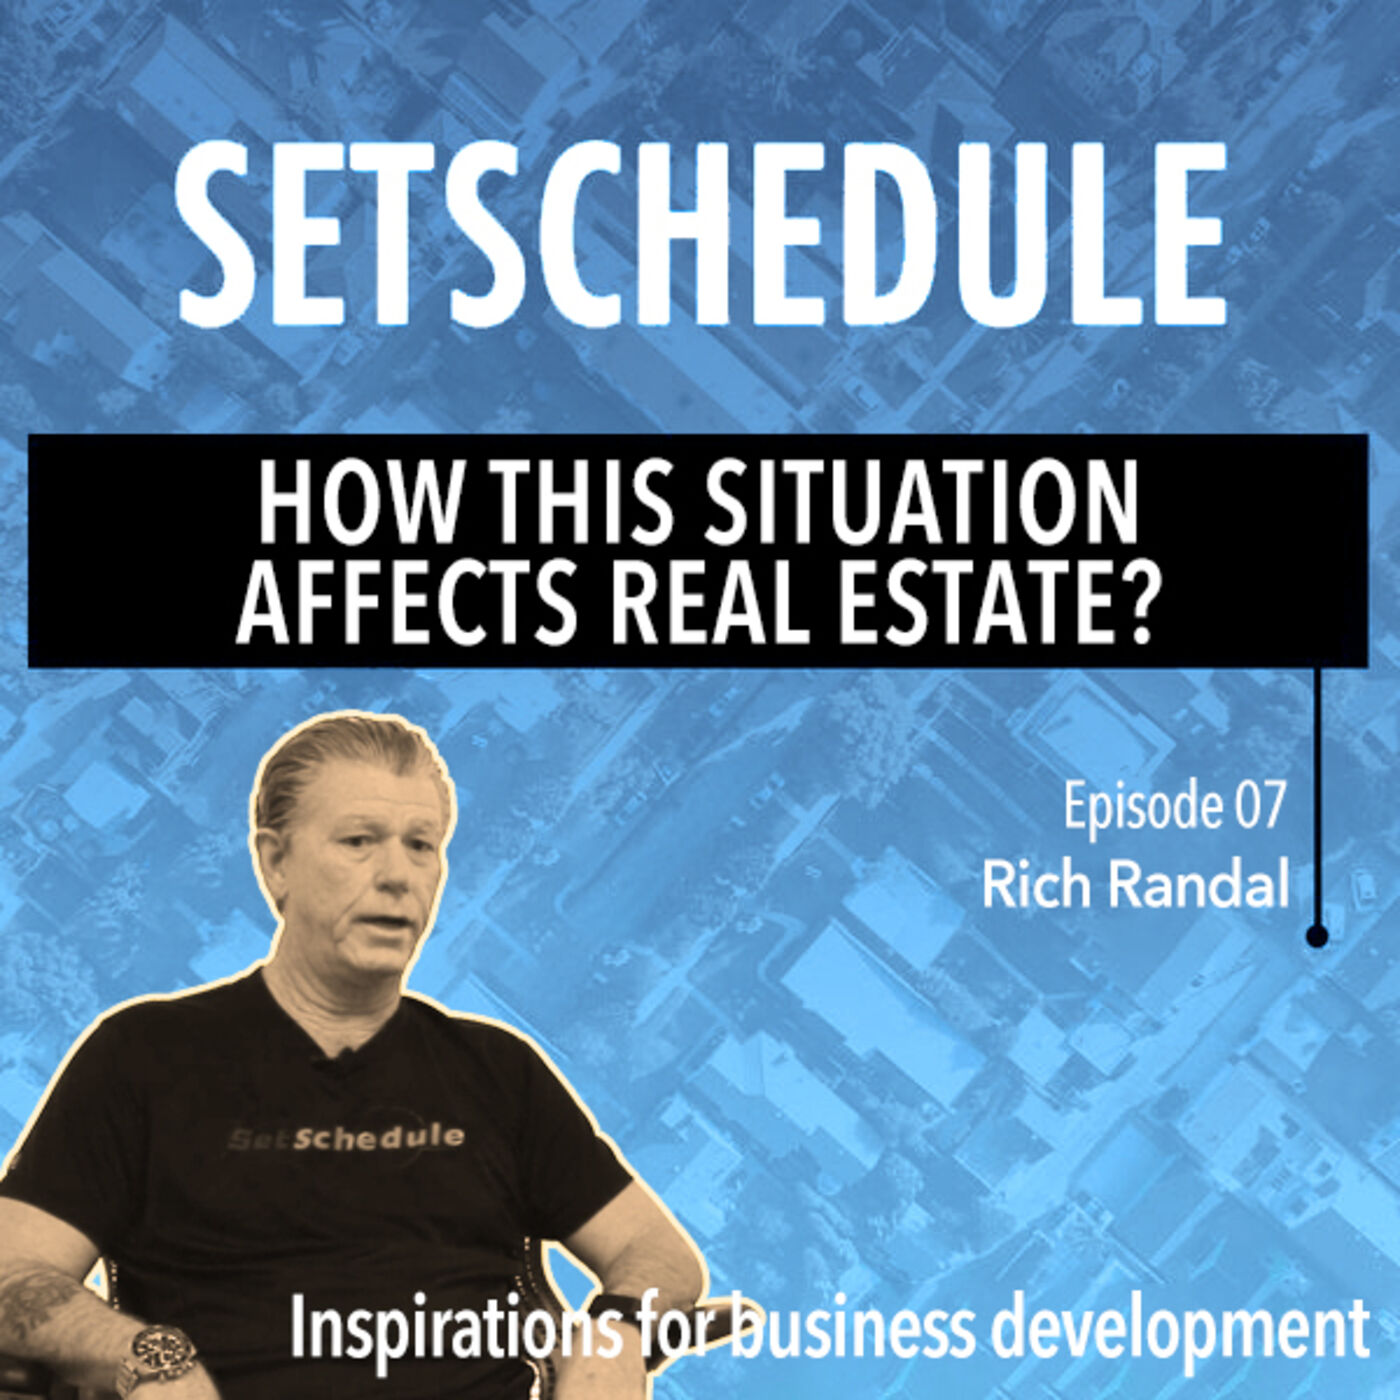 Discussing COVID-19's effect on real estate with Rich Randal